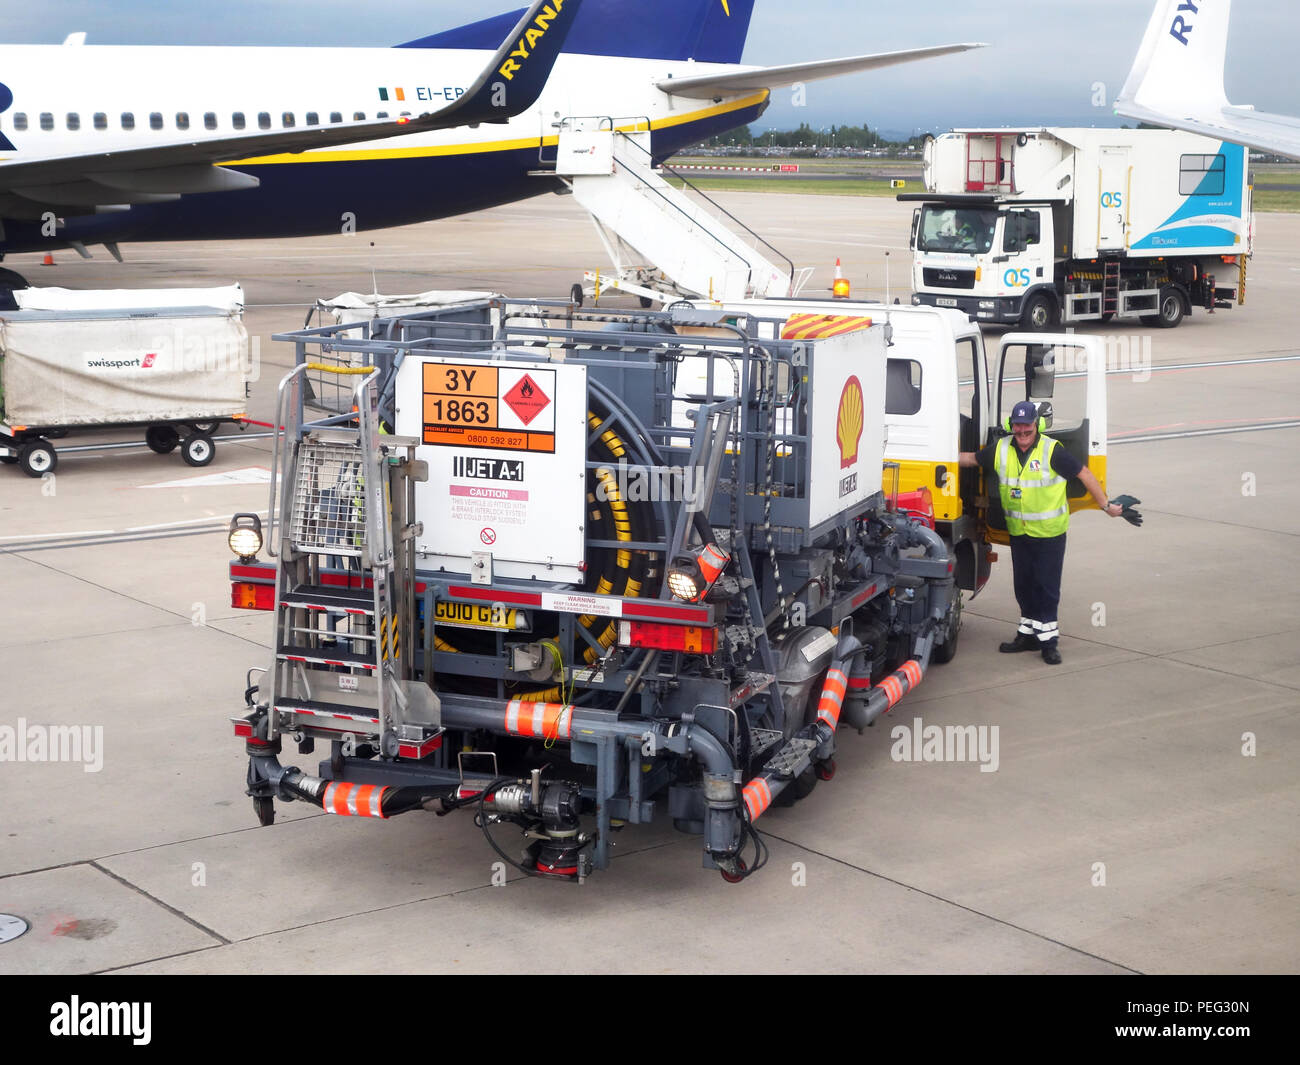 Airport worker starting the aviation refuelling of a plane at Manchester International Airport. image shows a fuel truck with plane also in shot - Stock Image